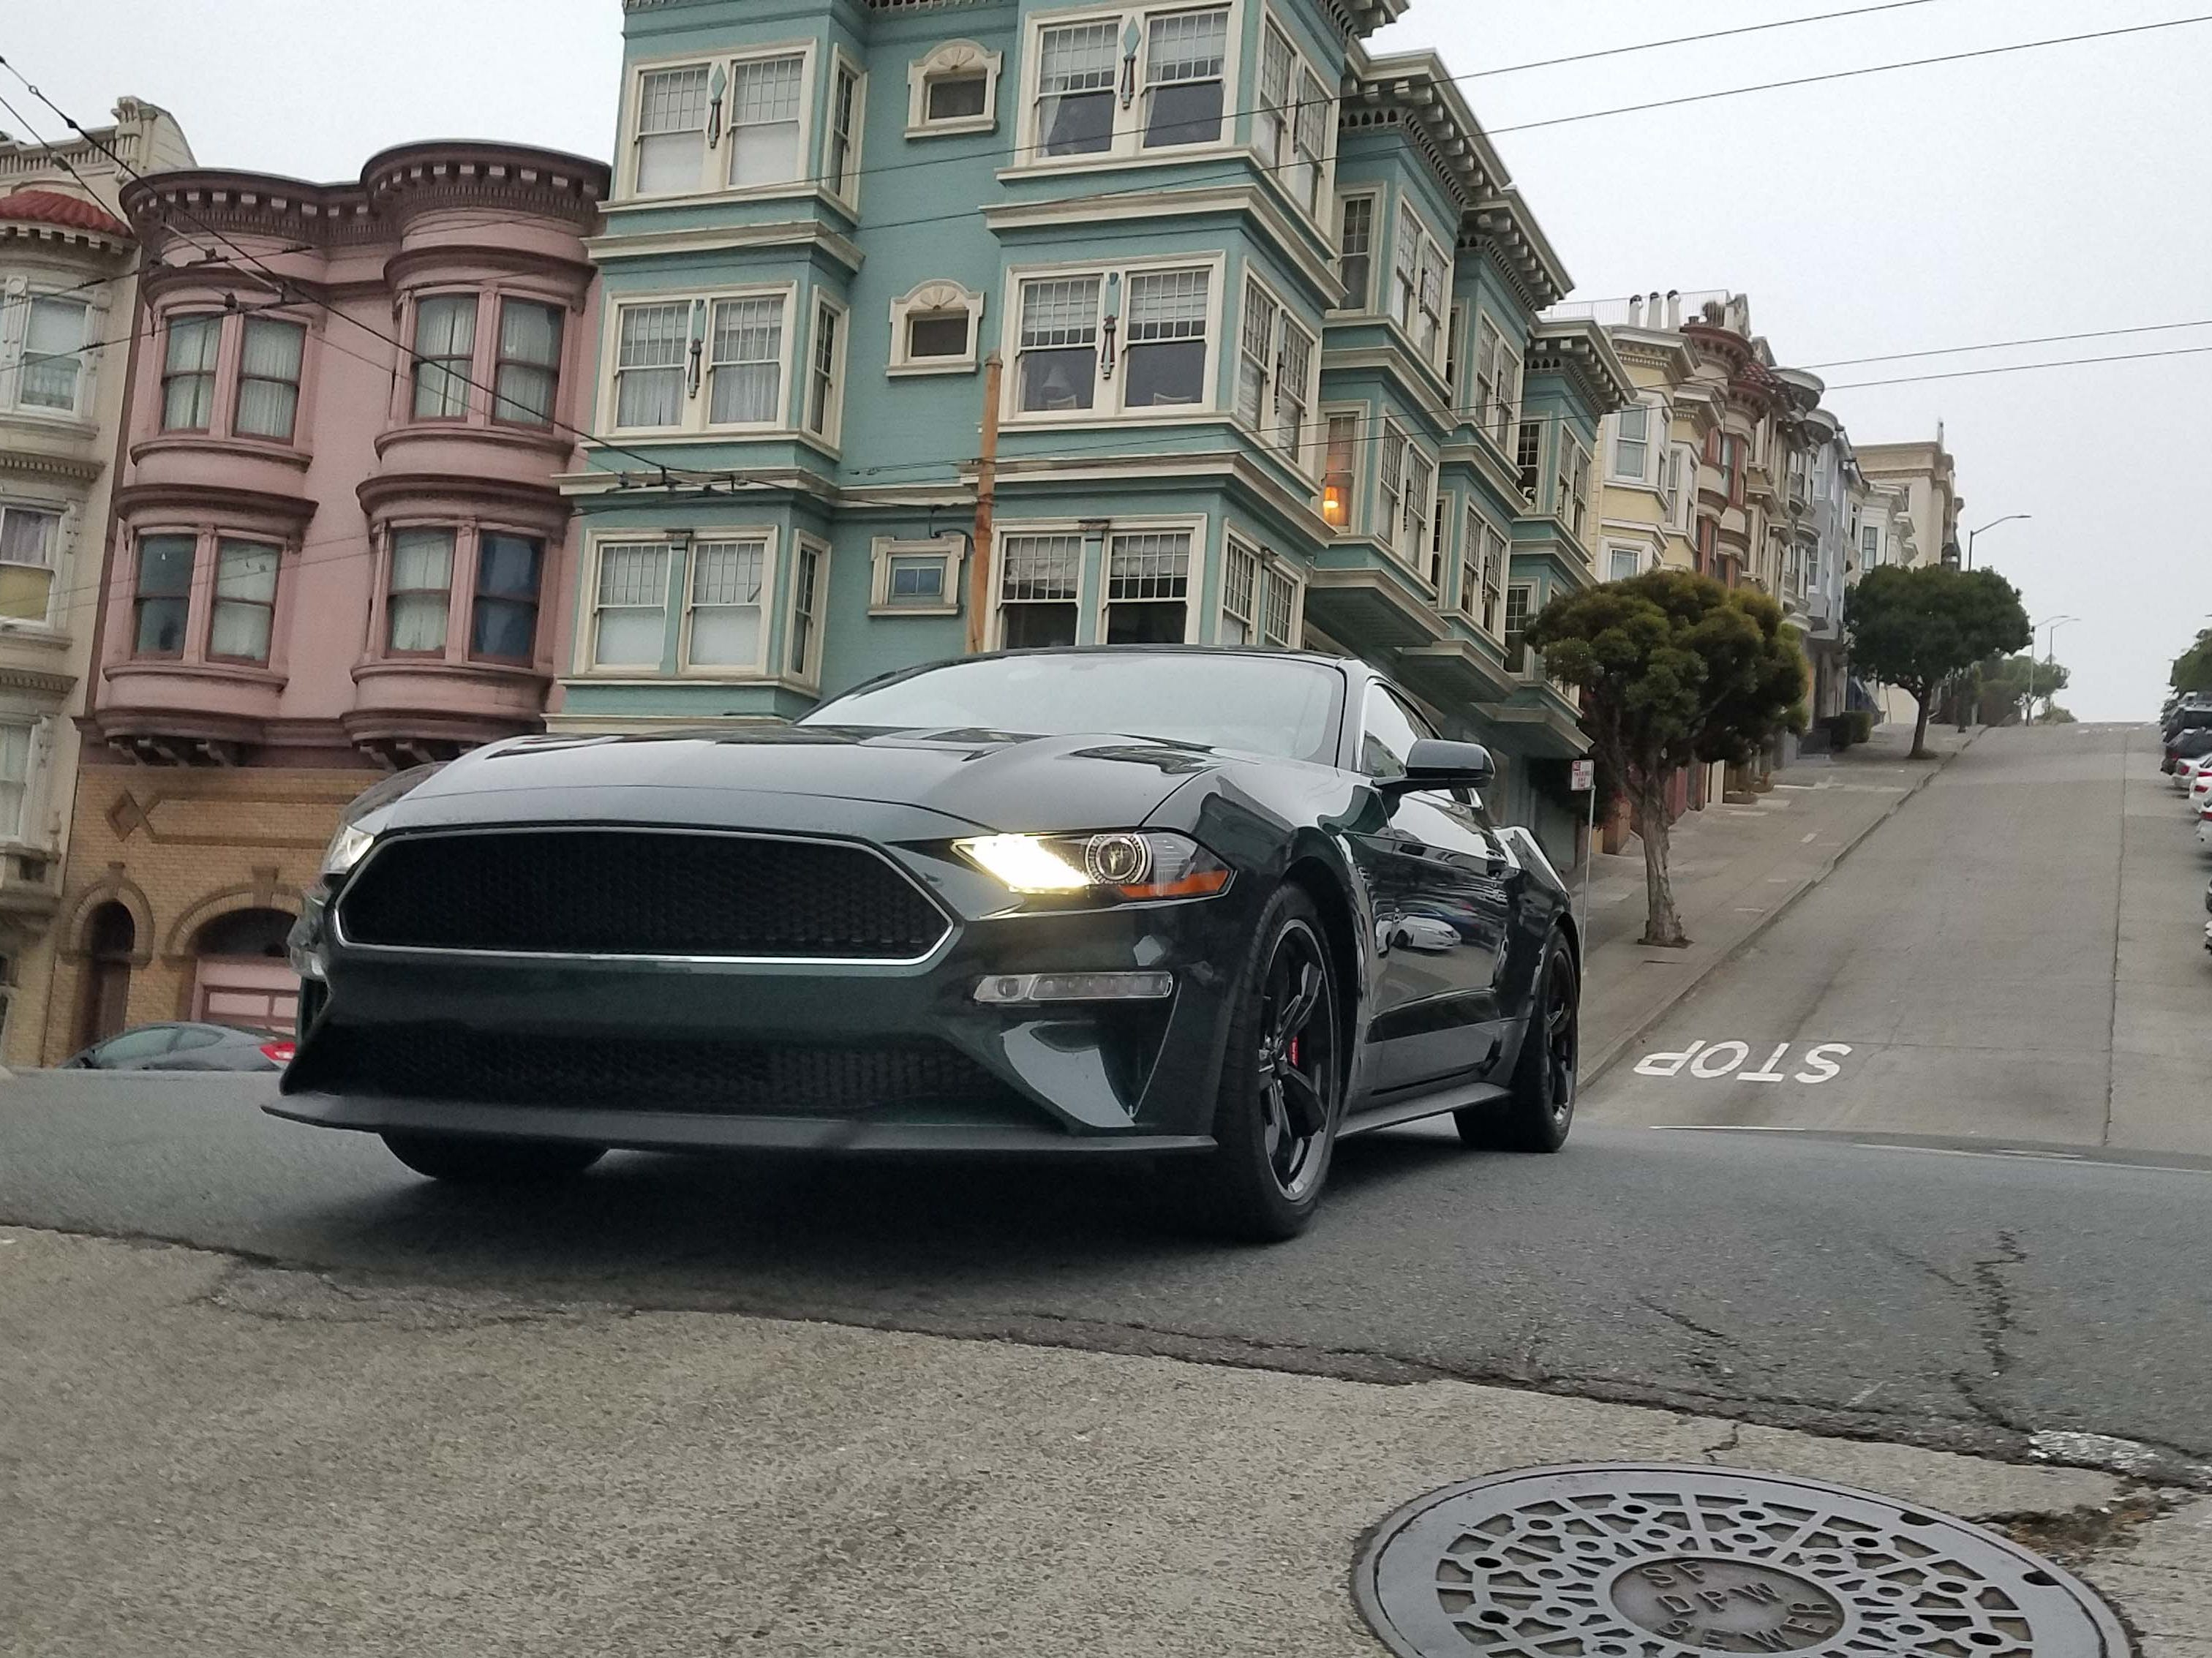 Not airborne. A 2019 Ford Mustang Bullitt plies the same Russian Hill streets — but at lower speed — as the original, 1968 movie car.